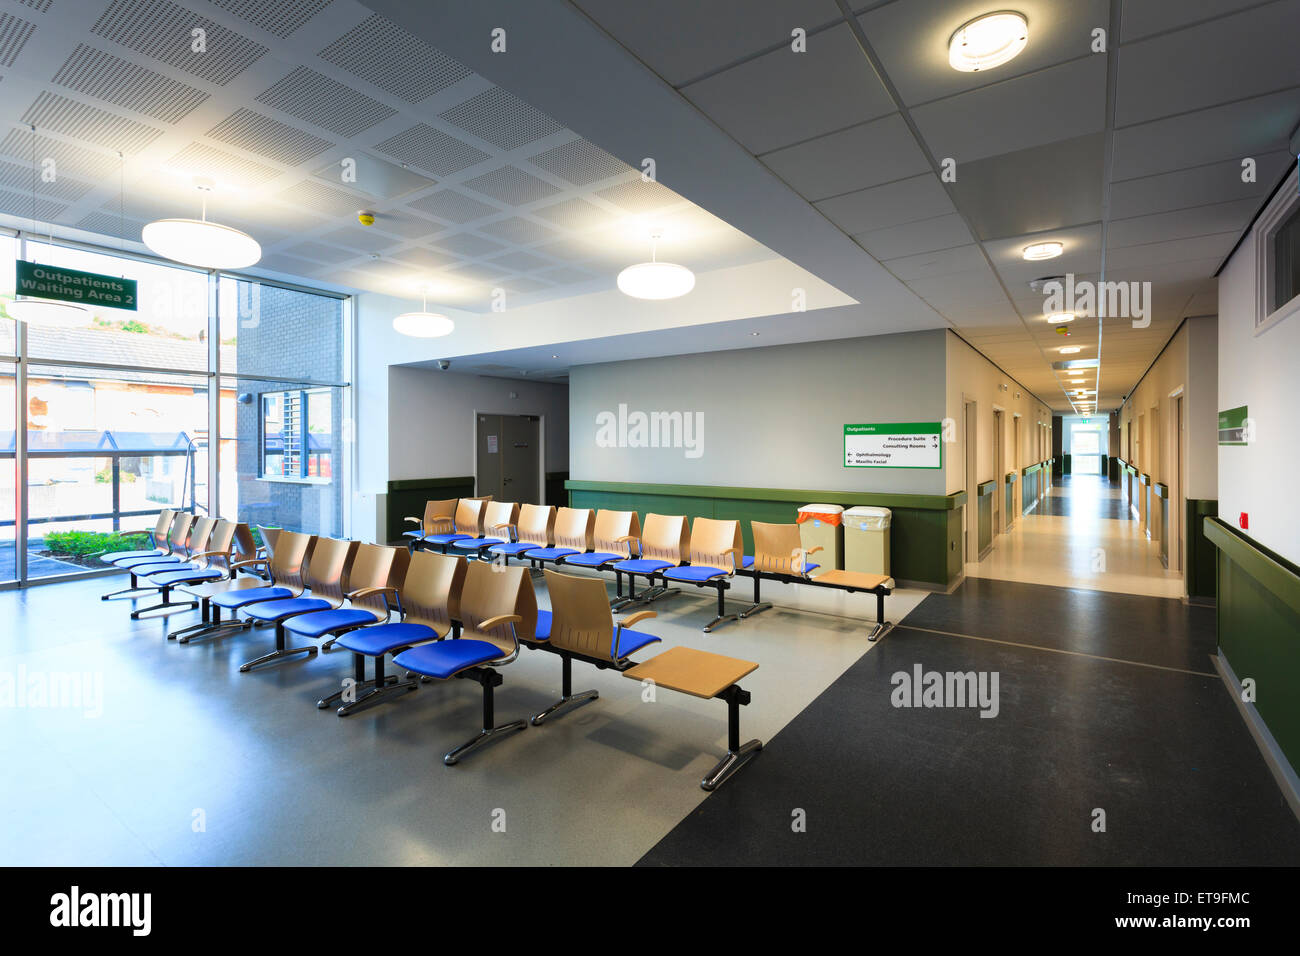 Hospital outpatients waiting area unoccupied without people - Stock Image